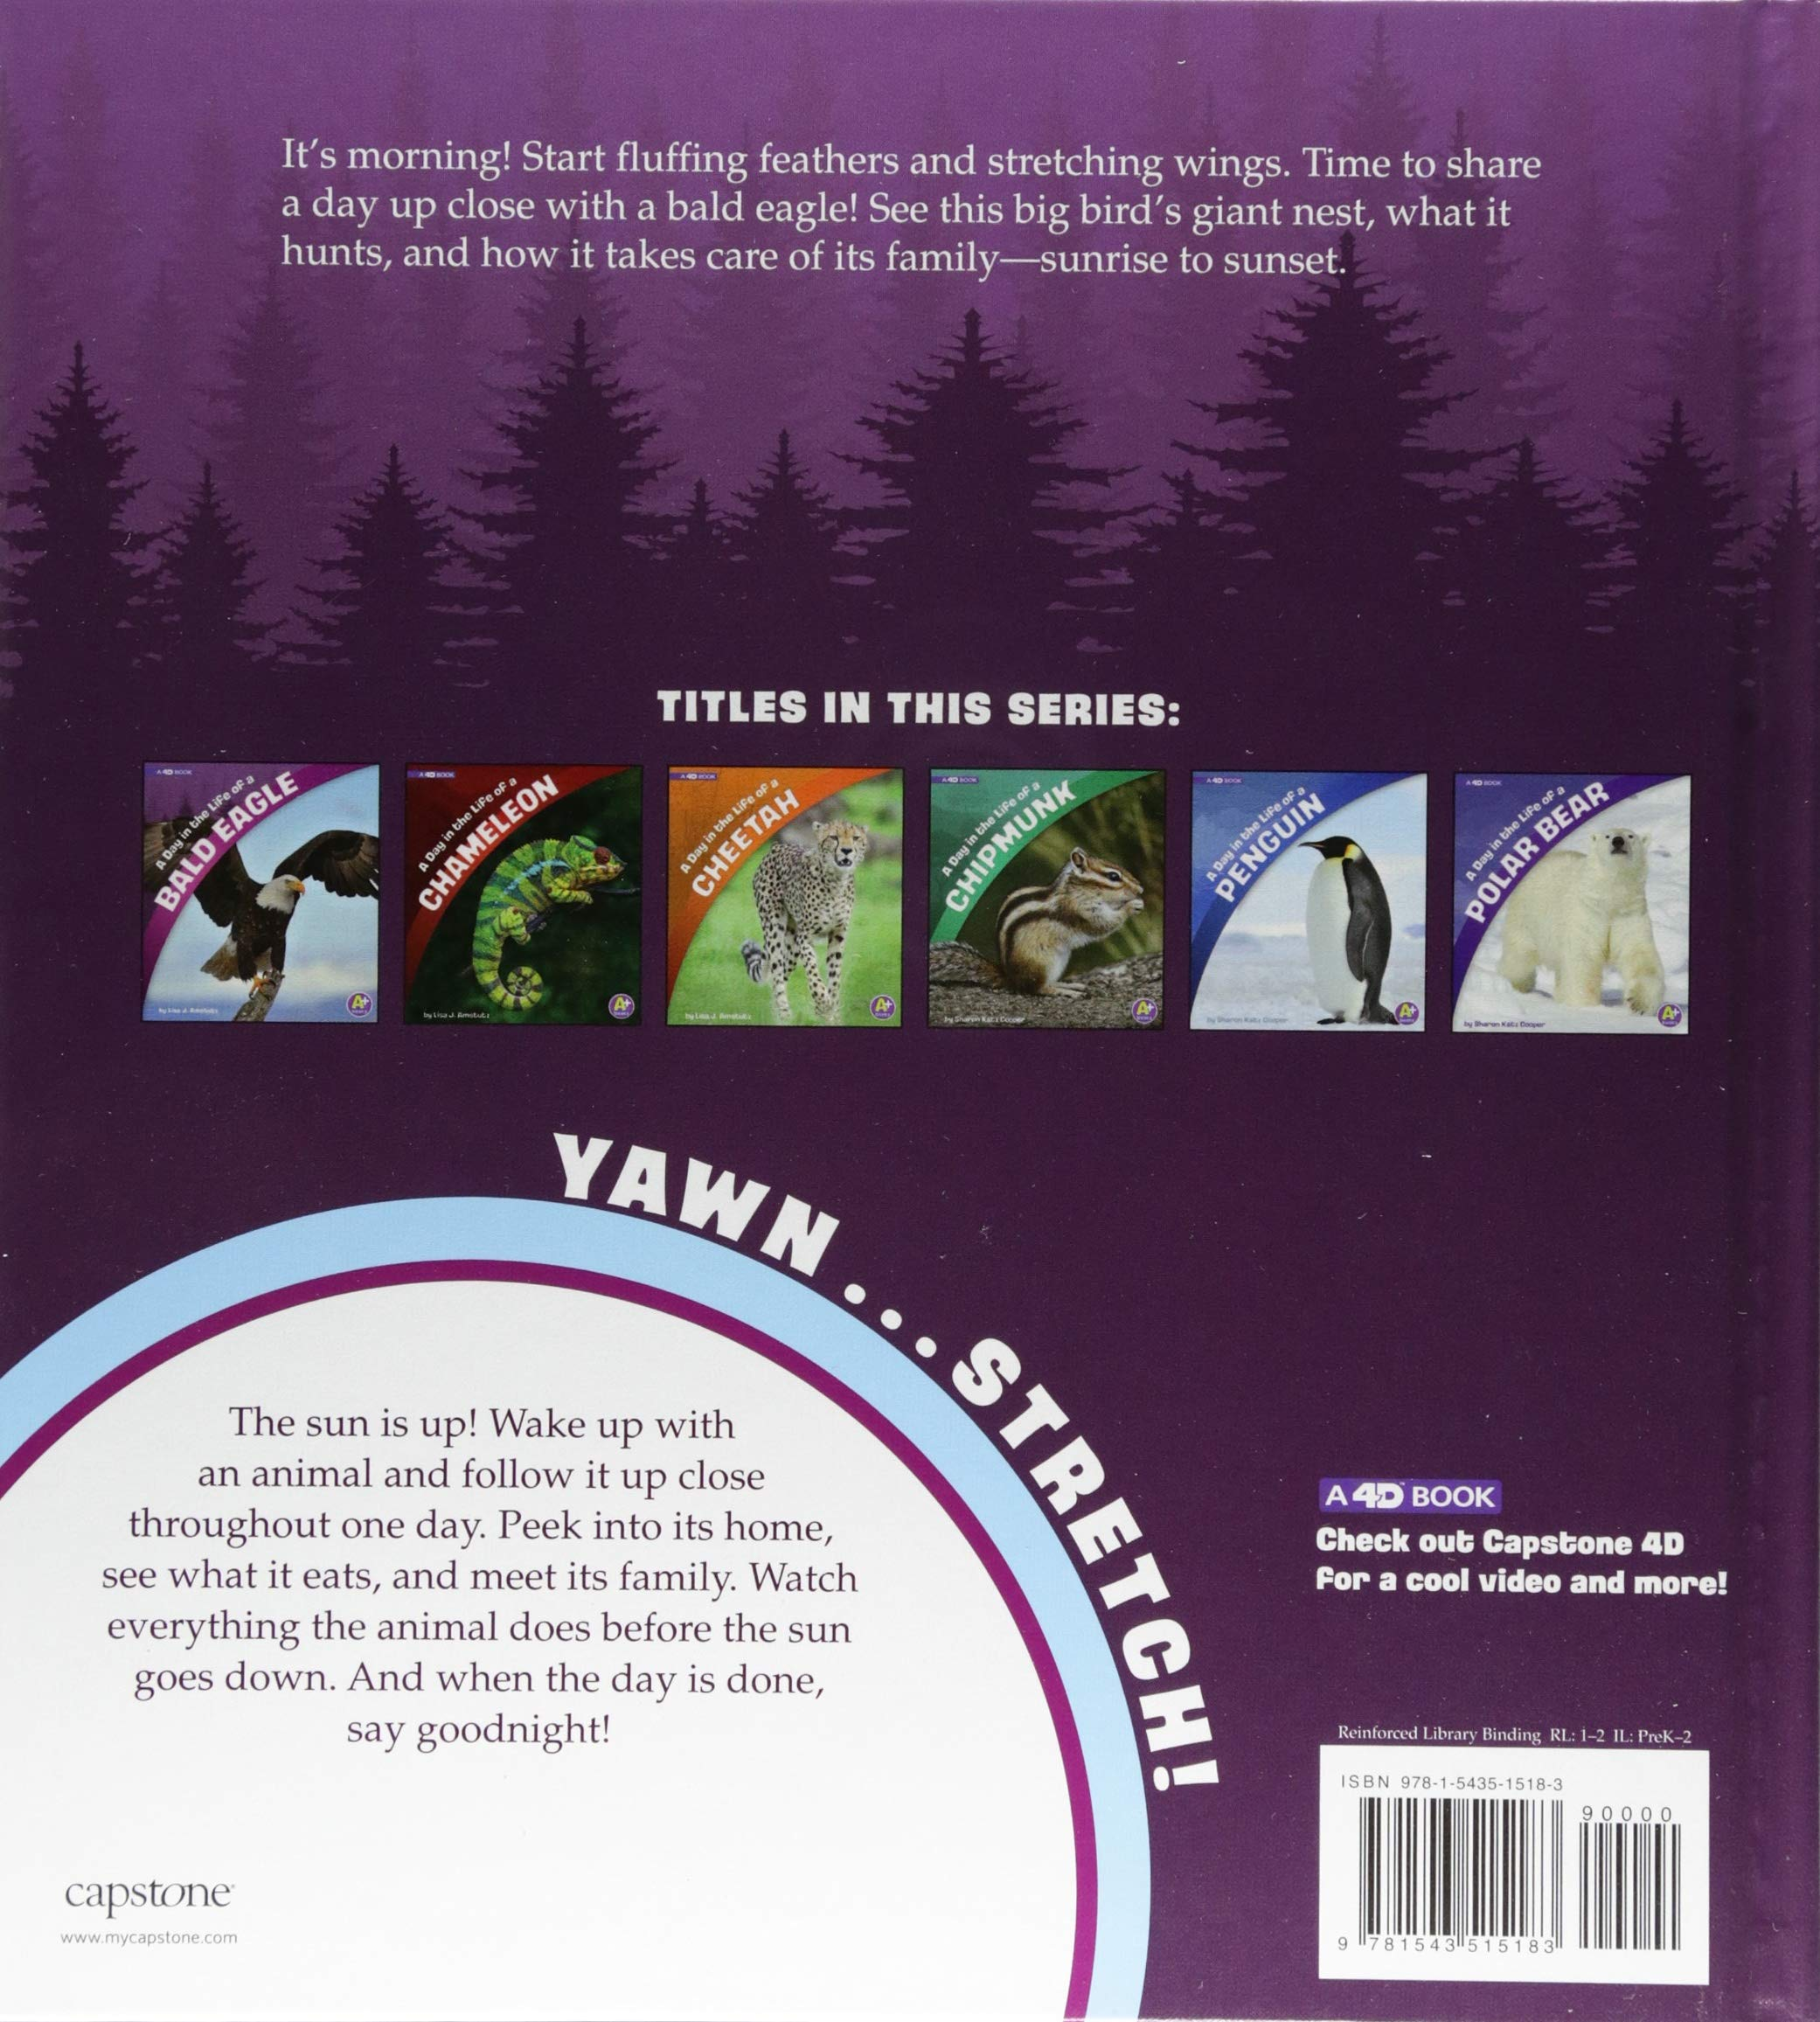 A Day In The Life Of Bald Eagle 4d Book Lisa J Amstutz Cycle Also Diagram Addition 9781543515183 Books